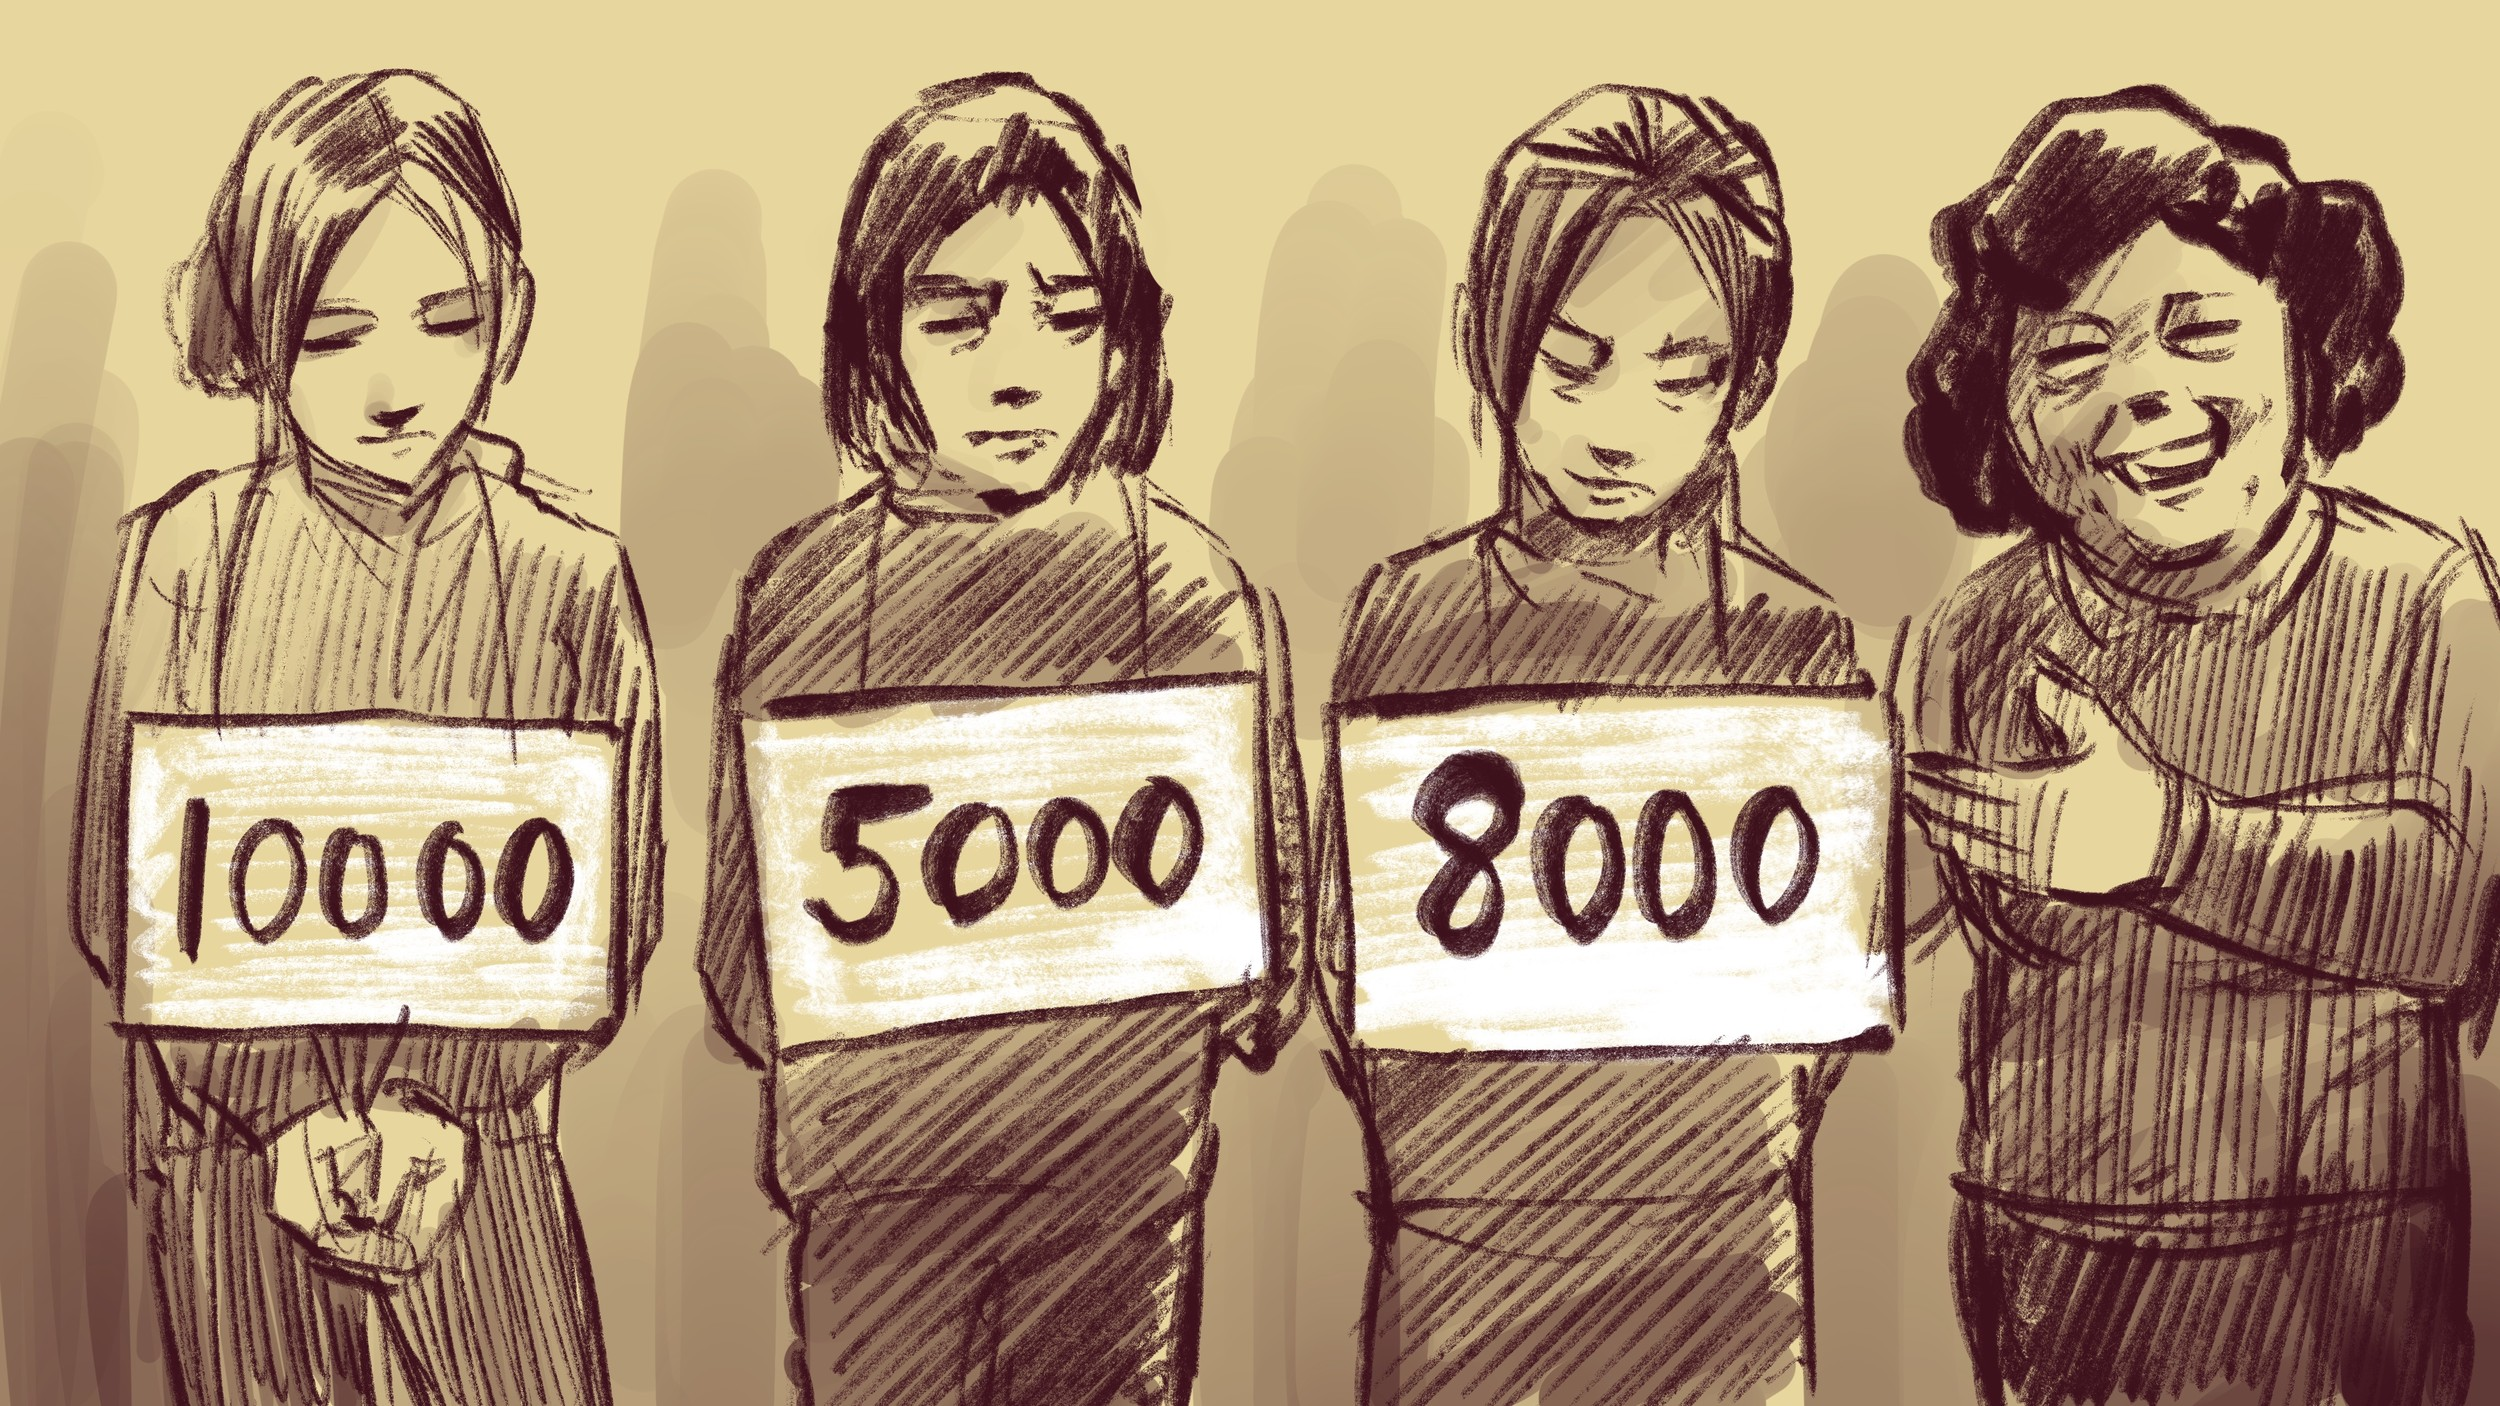 """""""They said my face looked pretty but also old, so 8,000 was all I was worth."""""""